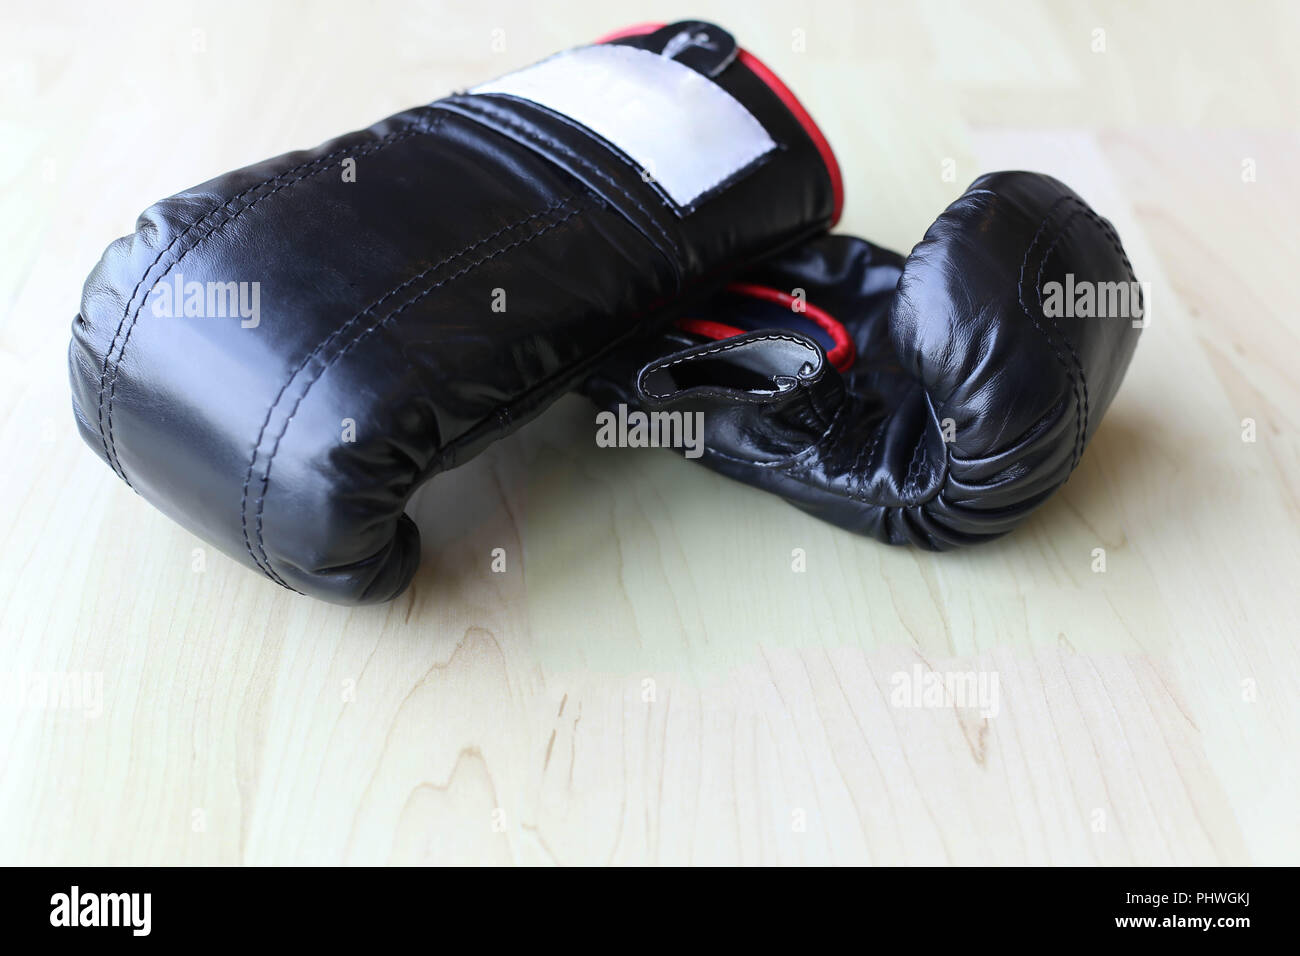 Pair of black leather boxing gloves - Stock Image